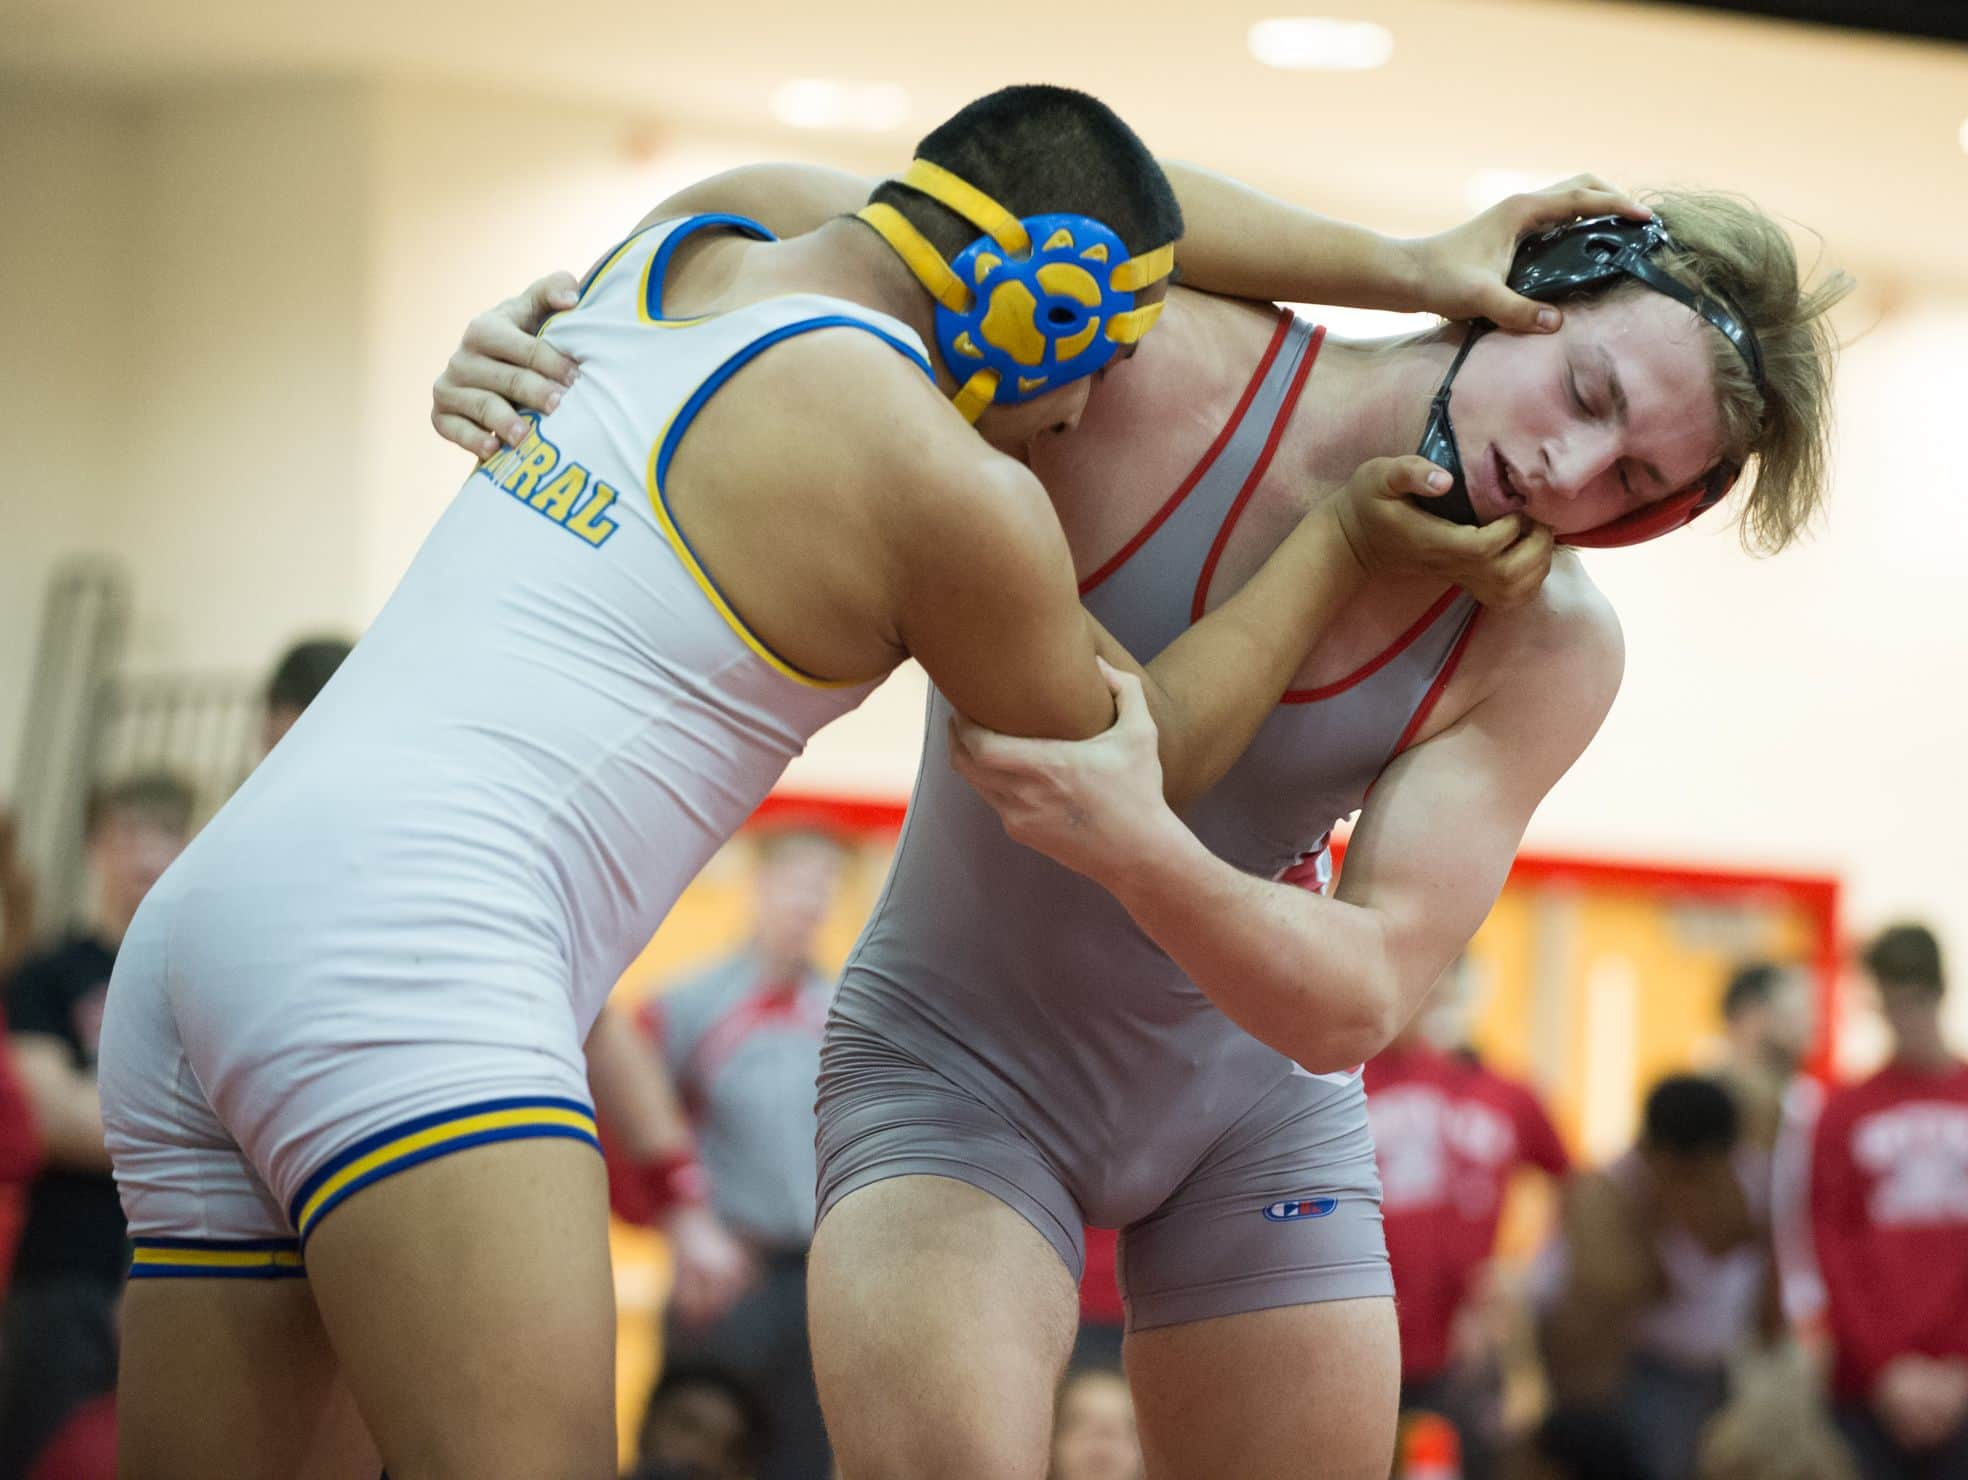 Sussex Central's Mario Santizo, left and Smyrna's Tony Wuest battles for position in the 220 pound match at DIAA Dual Meet Wrestling State Championship at Smyrna High School.